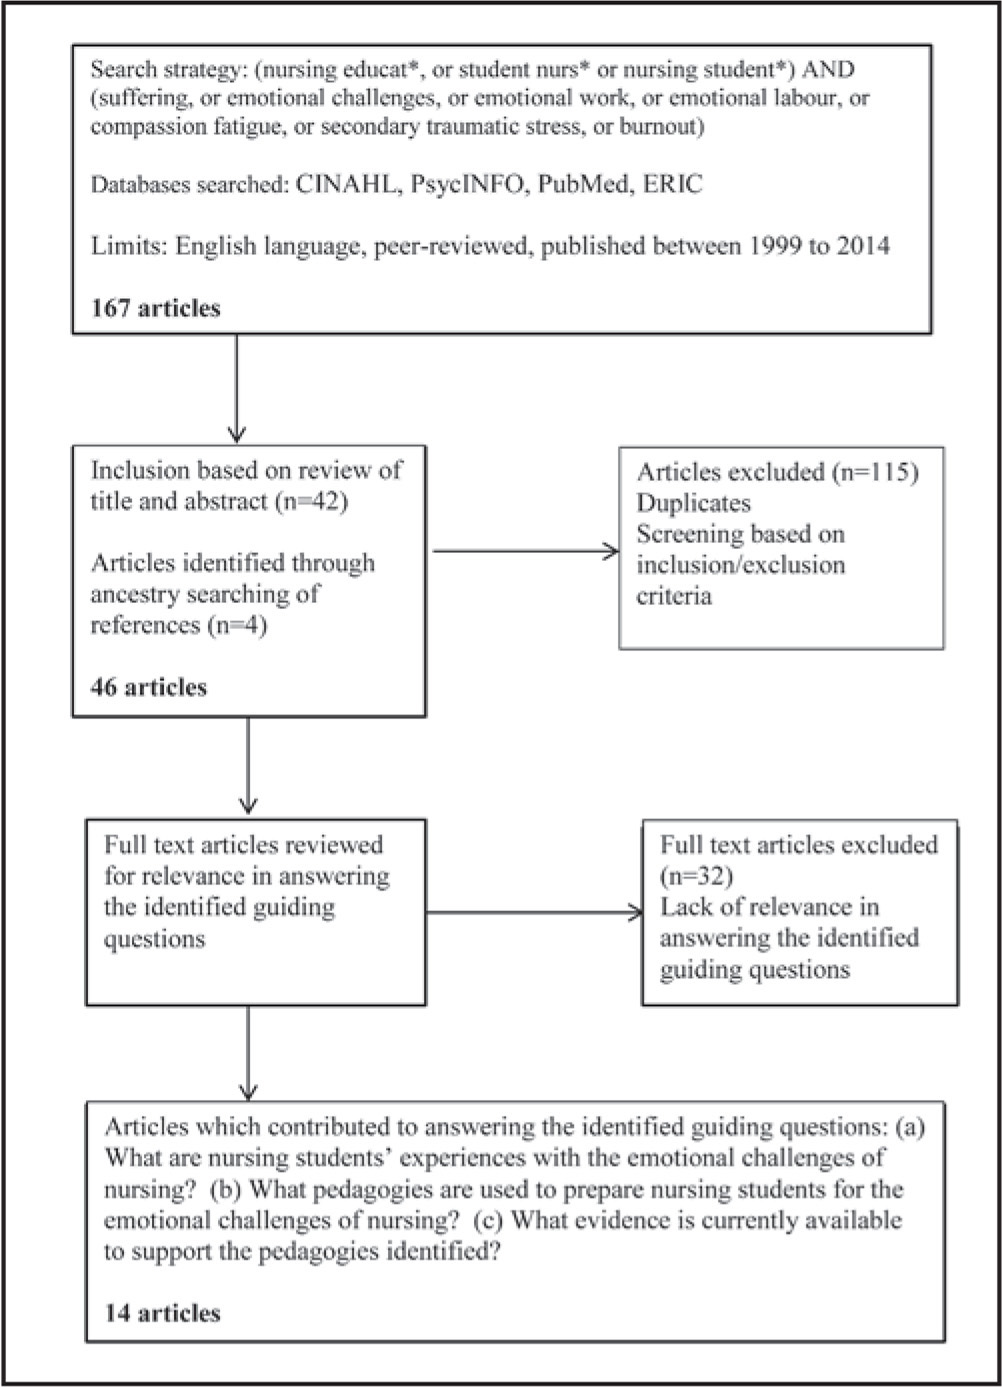 PRISMA (Preferred Reporting Items for Systematic Reviews and Meta-Analyses) flowchart of the literature search.